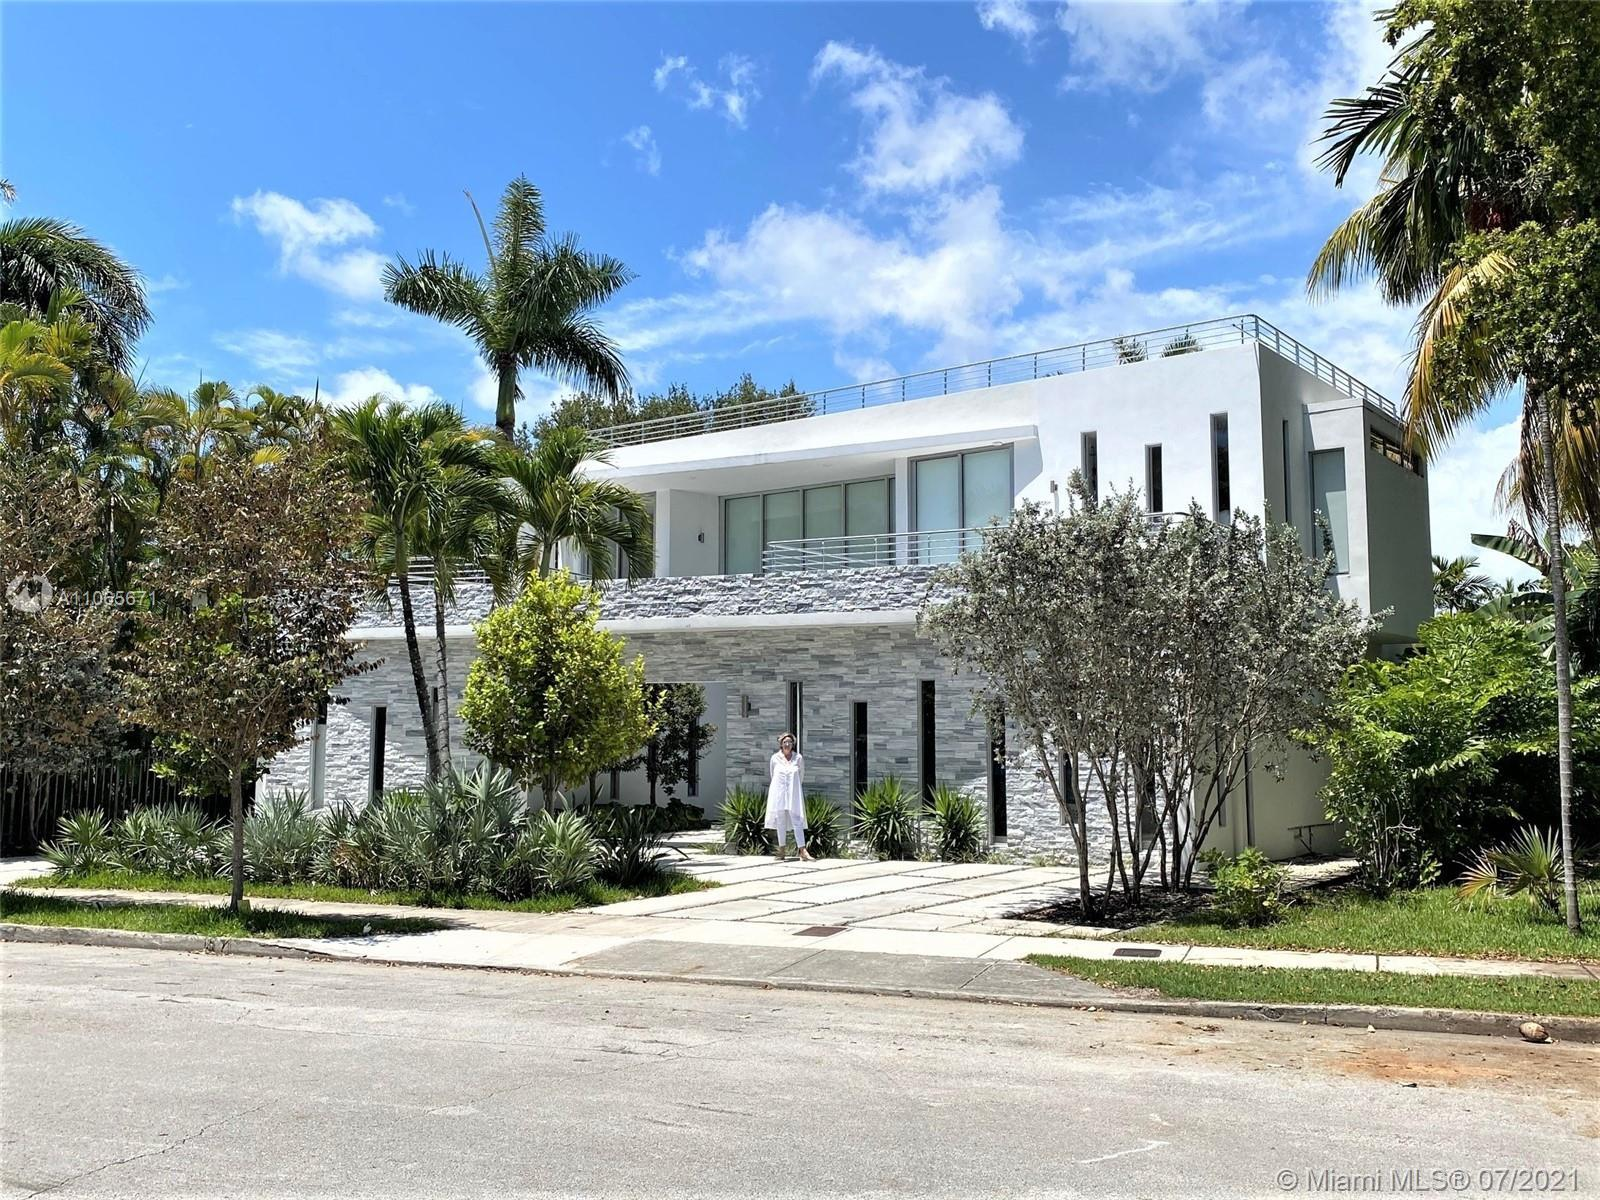 NEW ADDITION for a total of 4700 SQFT. This 2-story modern open-plan Bayview Pool Villa of 5 beds/5